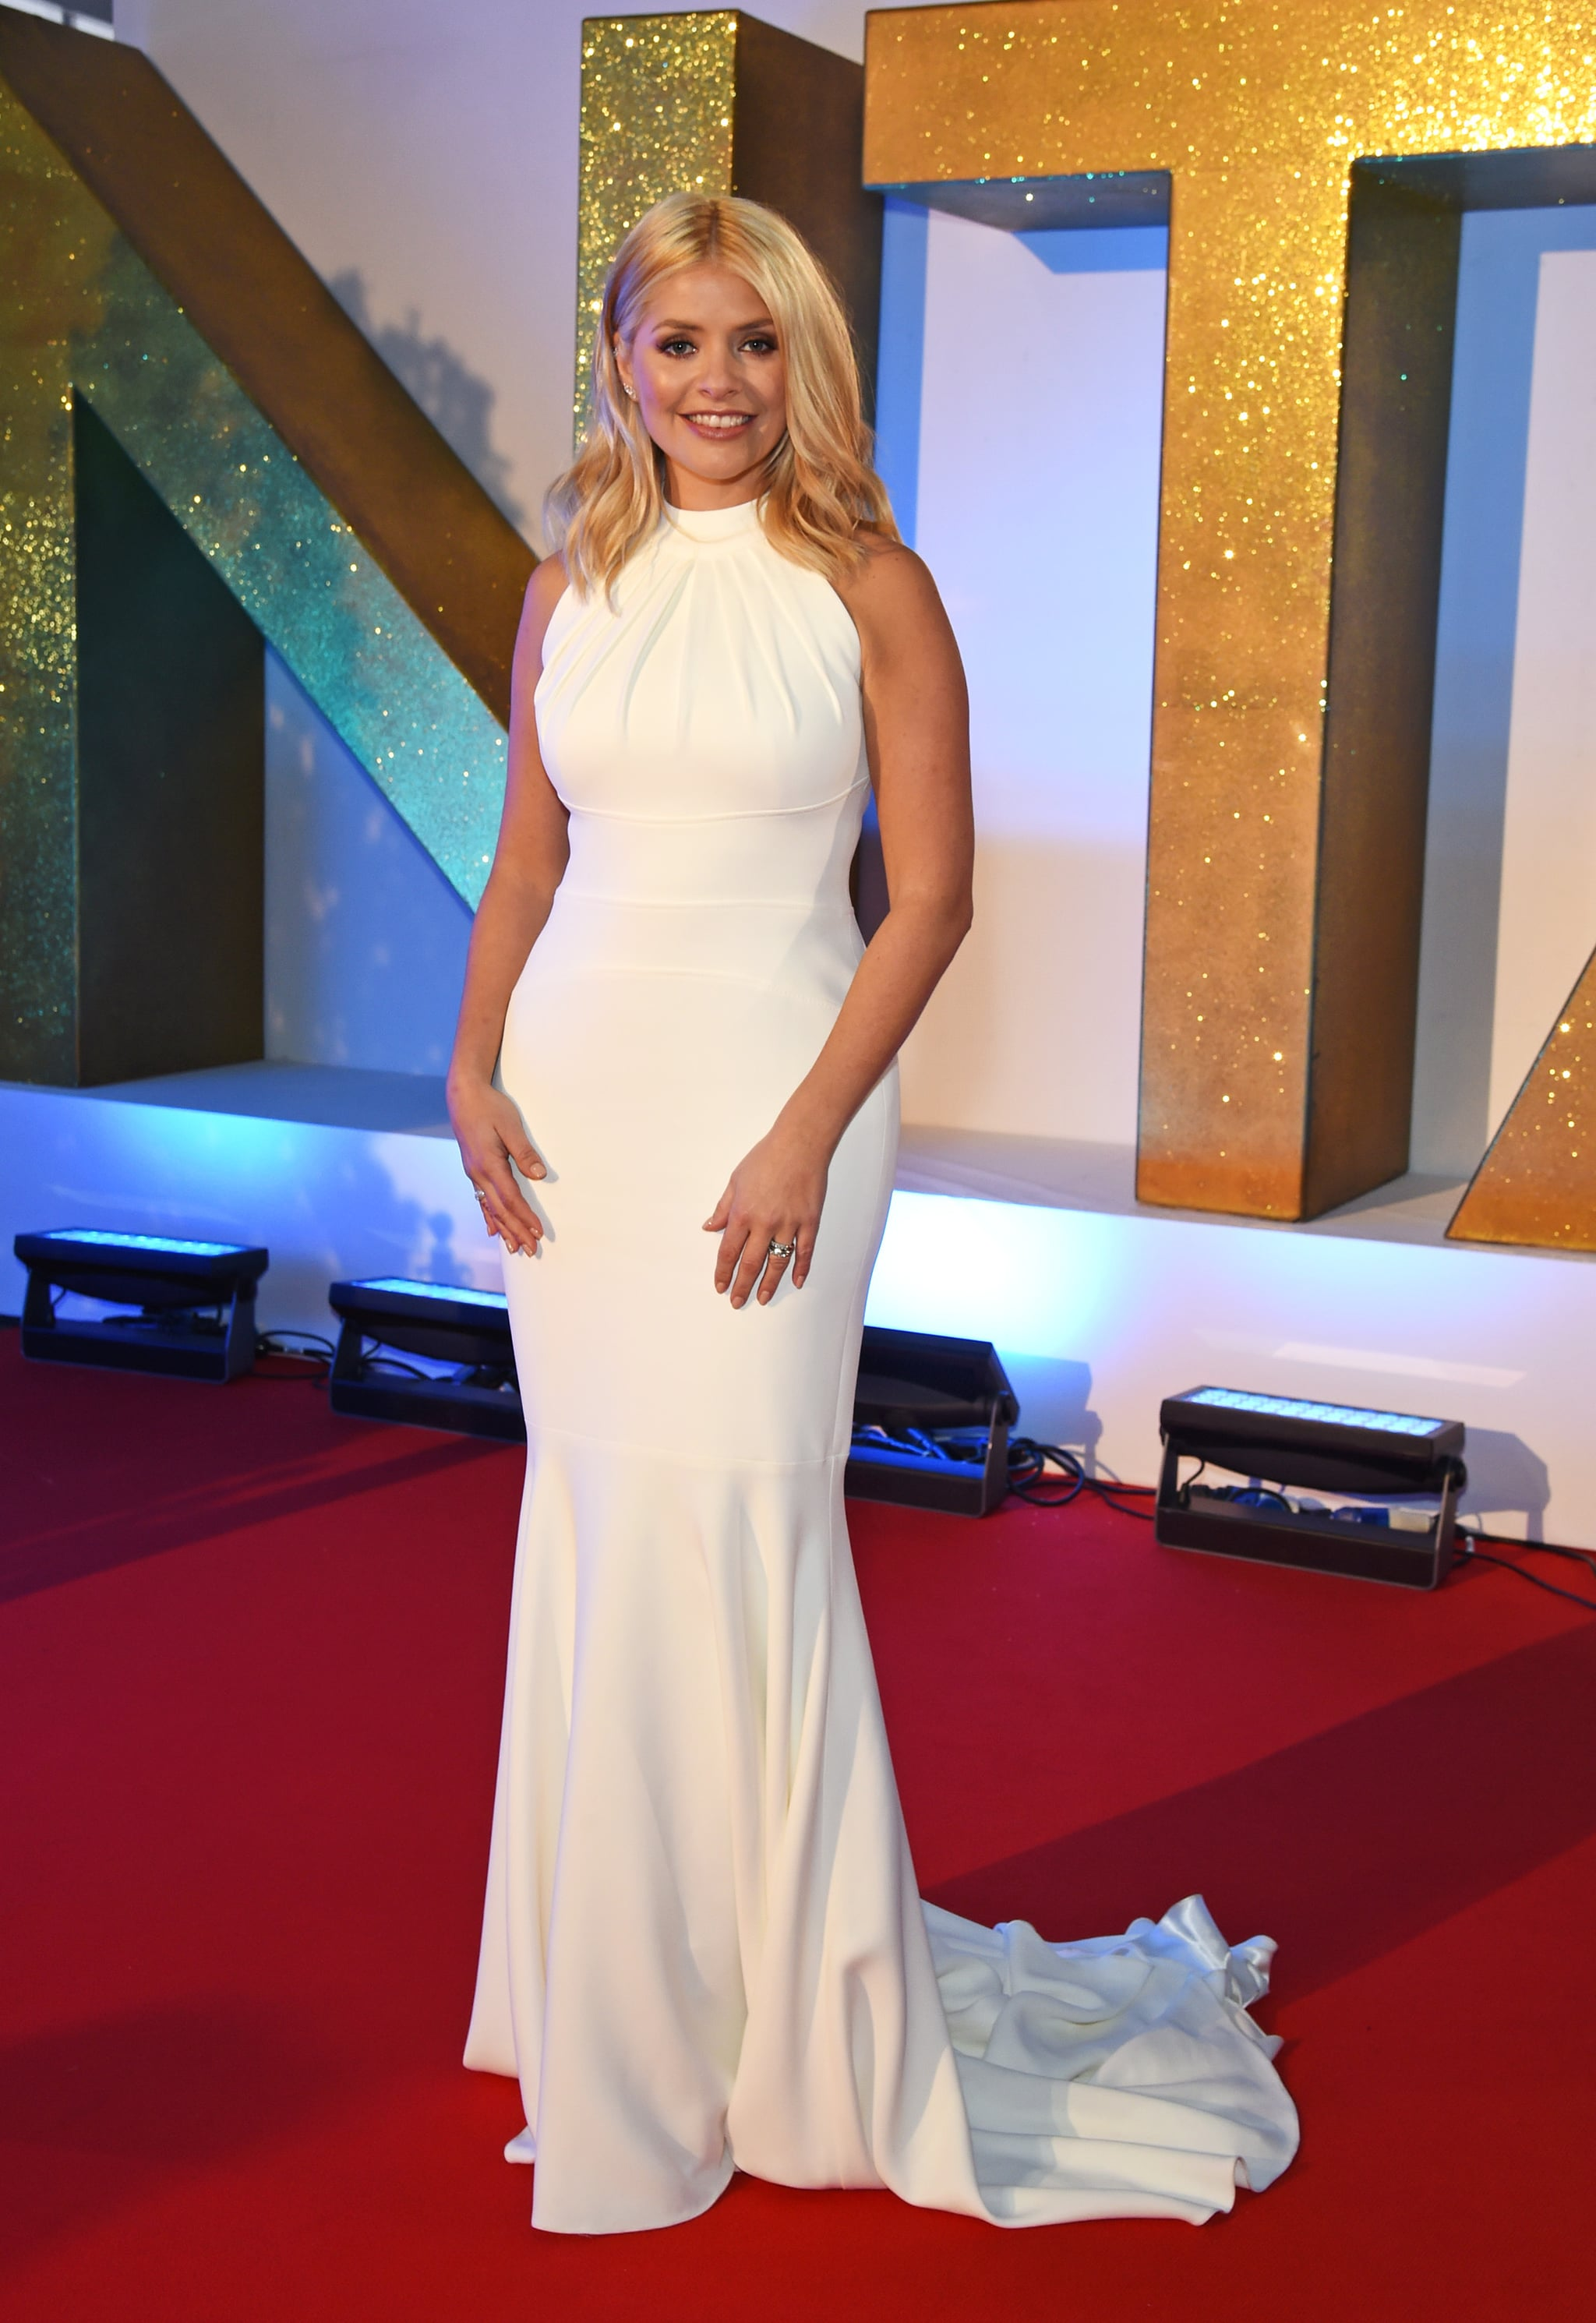 Holly Willoughby All The Must See Photos From The